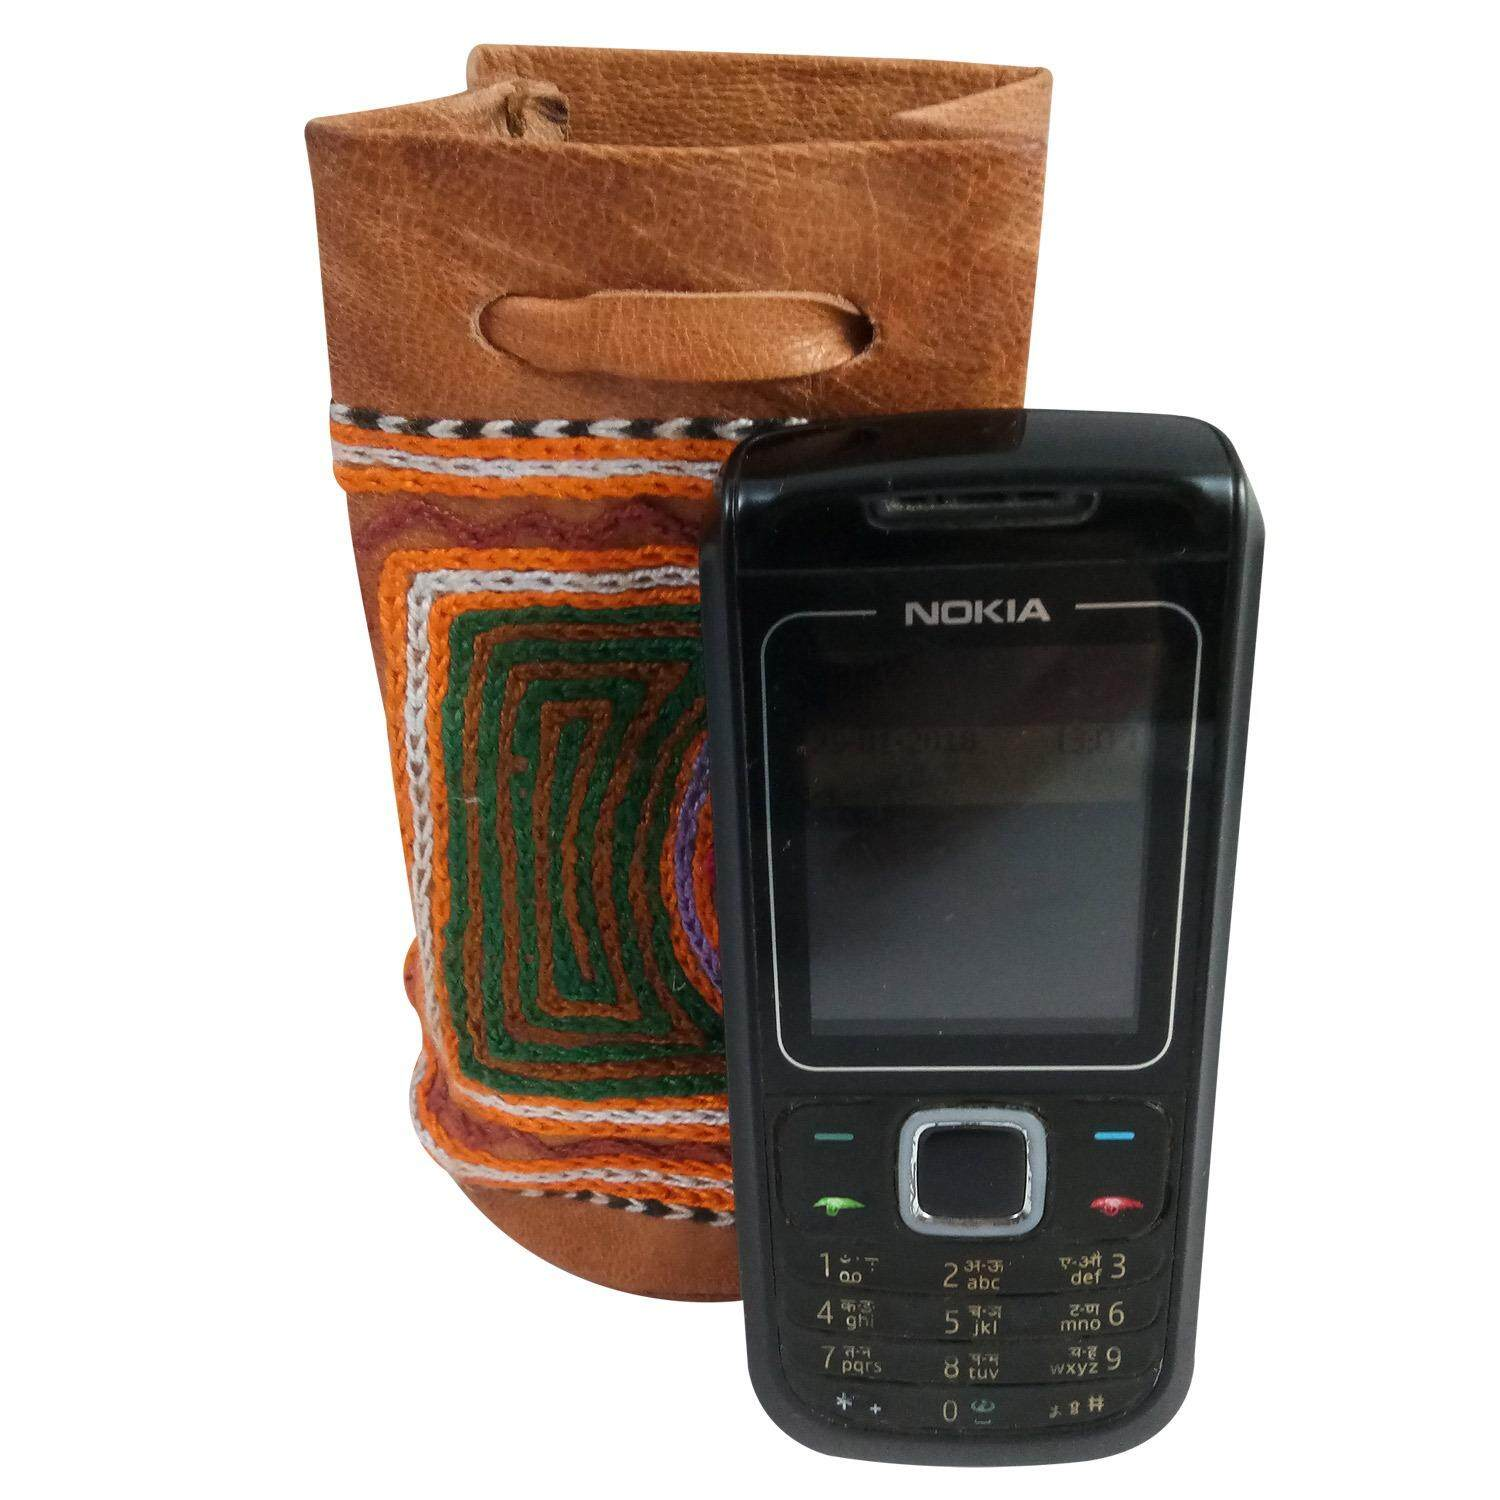 Mobile Phone Sling Pouch Handmade Crafted Leather Embroidered Mobile Phone Potli Case Sling Pouch Jewellery Carry Sling Potli & Phone Accessories Storage Sling Pouch Charger Carry Sling Pouch Bag Earphone Lid Carry Sling Pouch Bag - intl